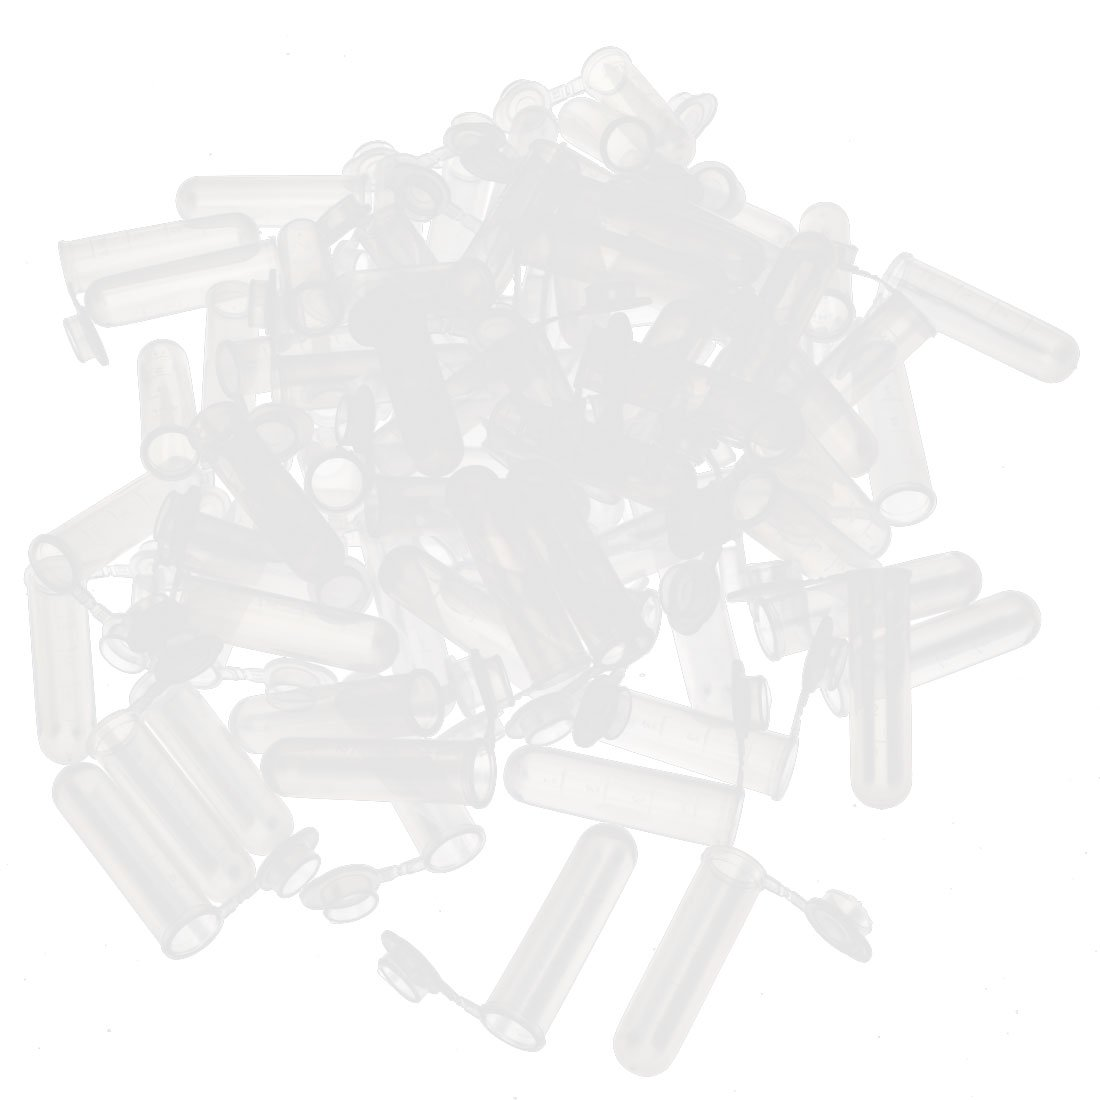 uxcell Plastic Graduated Sample Collection Holder Centrifuge Tube 5ml 300 Pcs